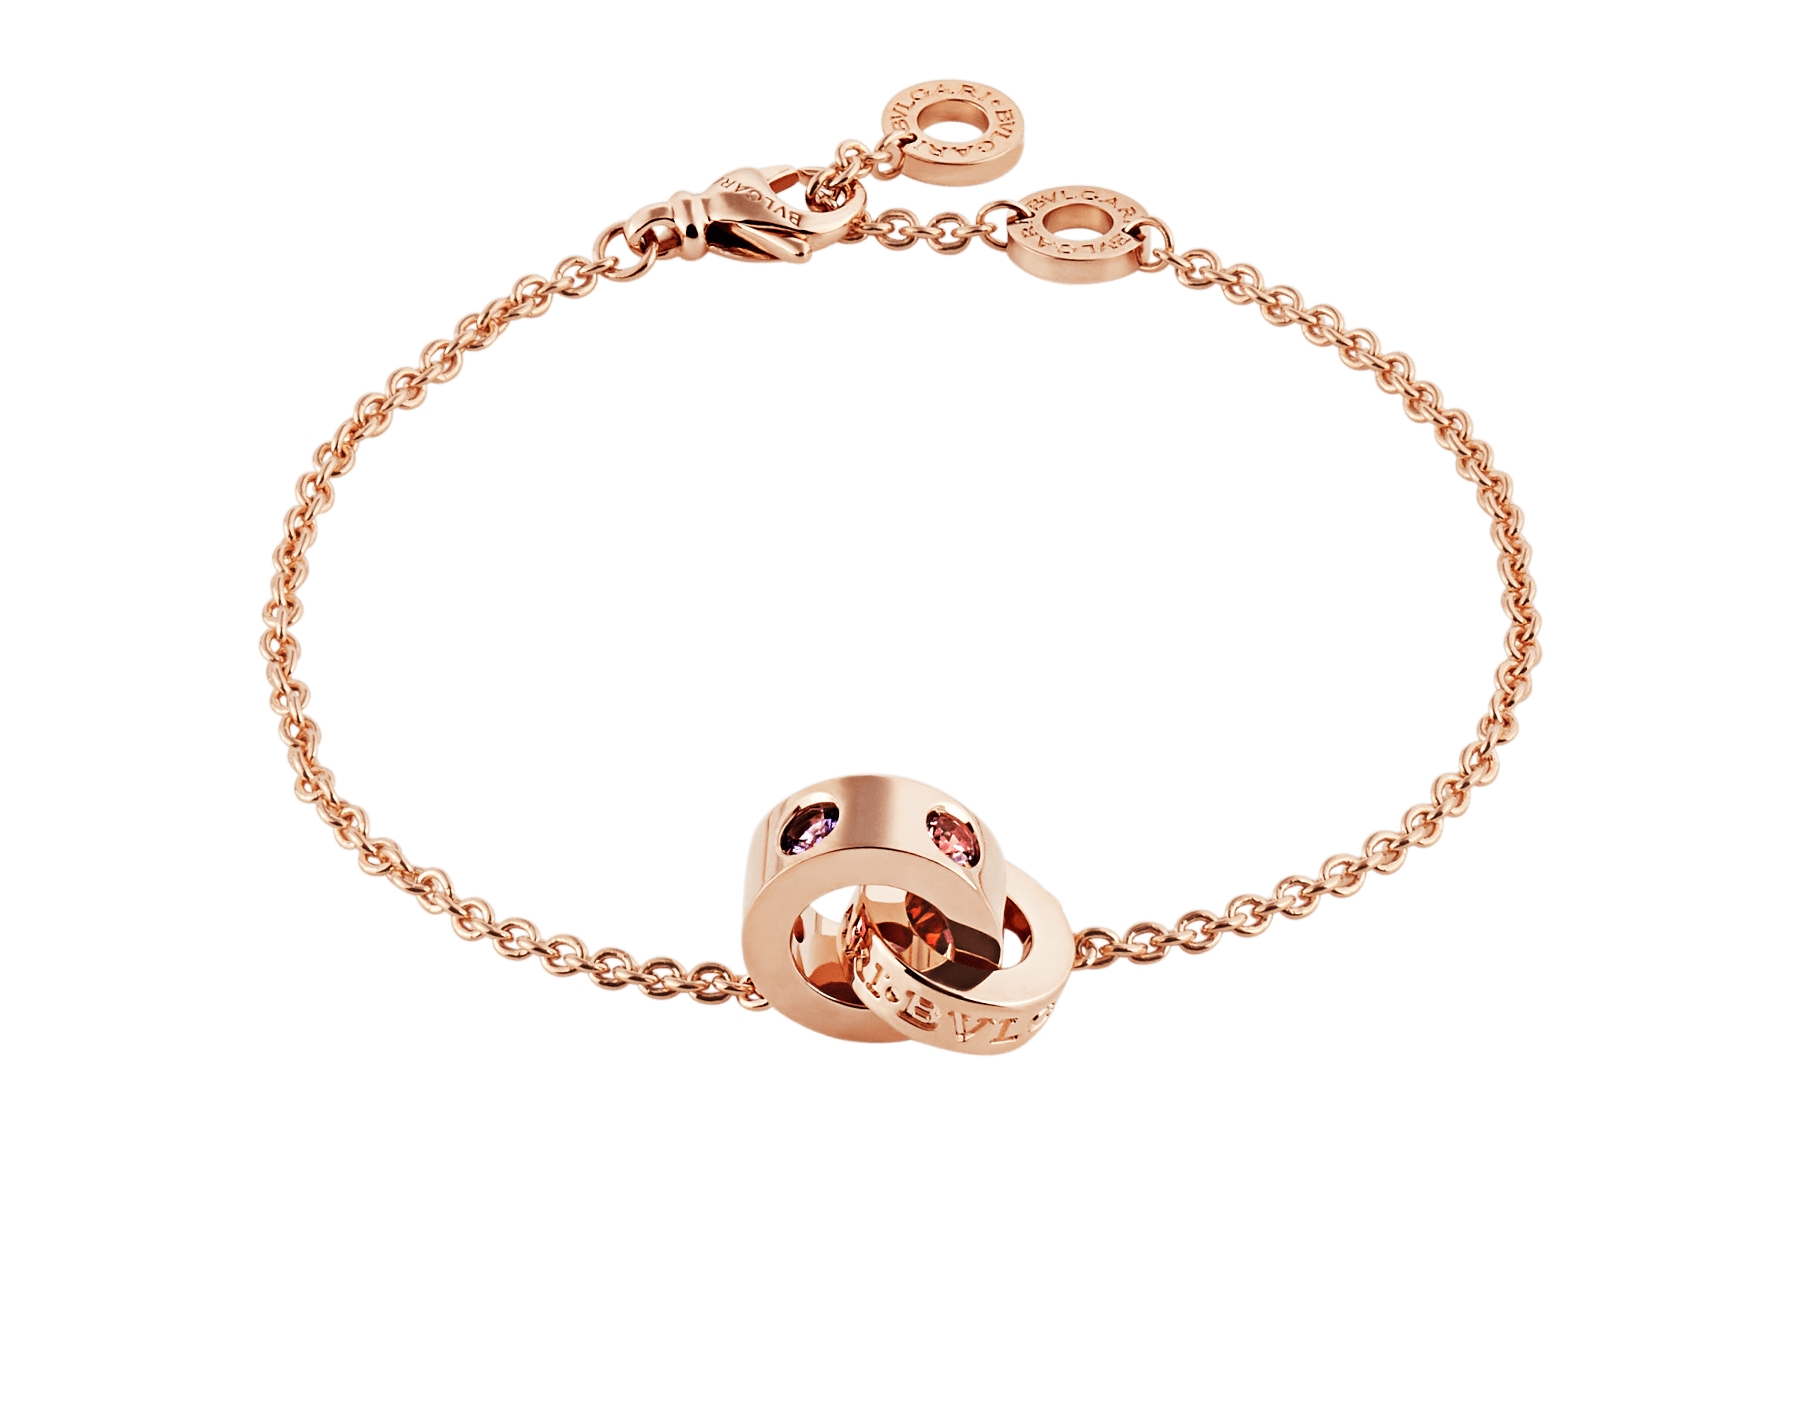 BVLGARI BVLGARI 18 kt rose gold bracelet set with amethysts and pink tourmalines BR857740 image 1